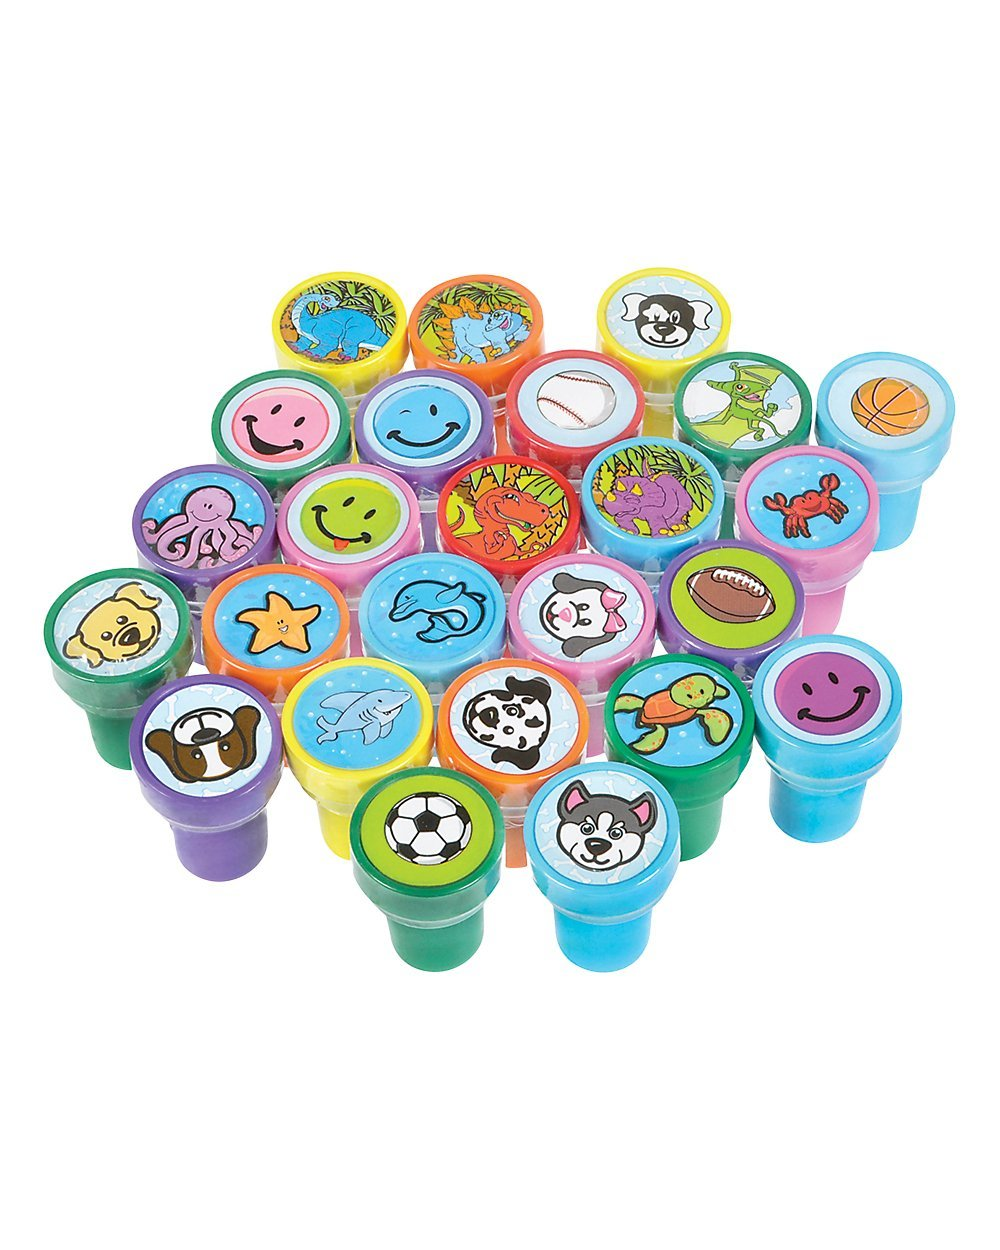 Halloween Treats Minus The Sweets - Assorted Plastic Stamps